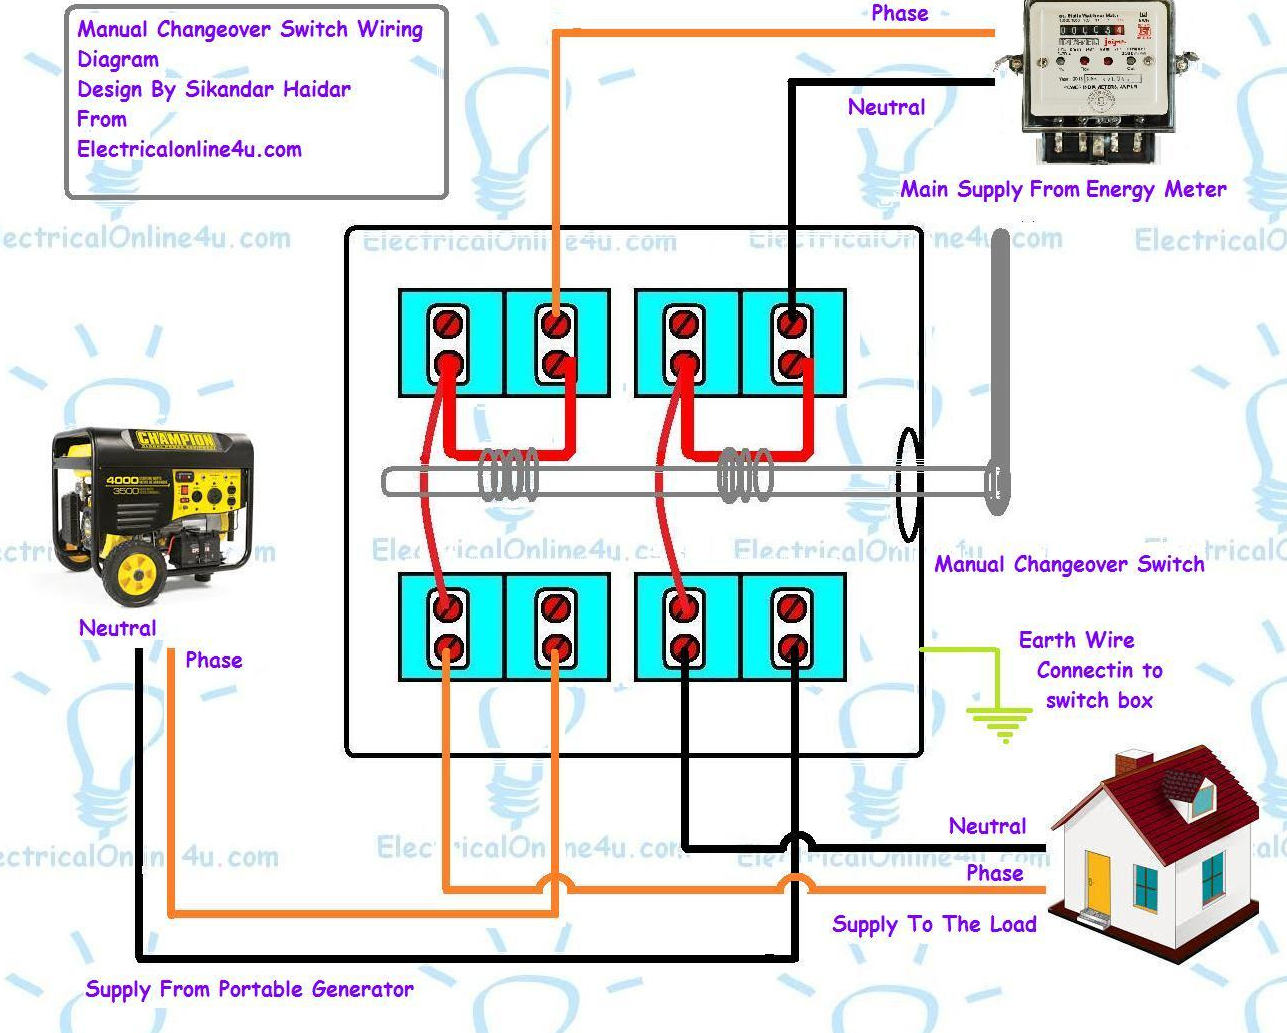 Manual Changeover Switch Wiring Diagram For Portable Generator Light Diagrams